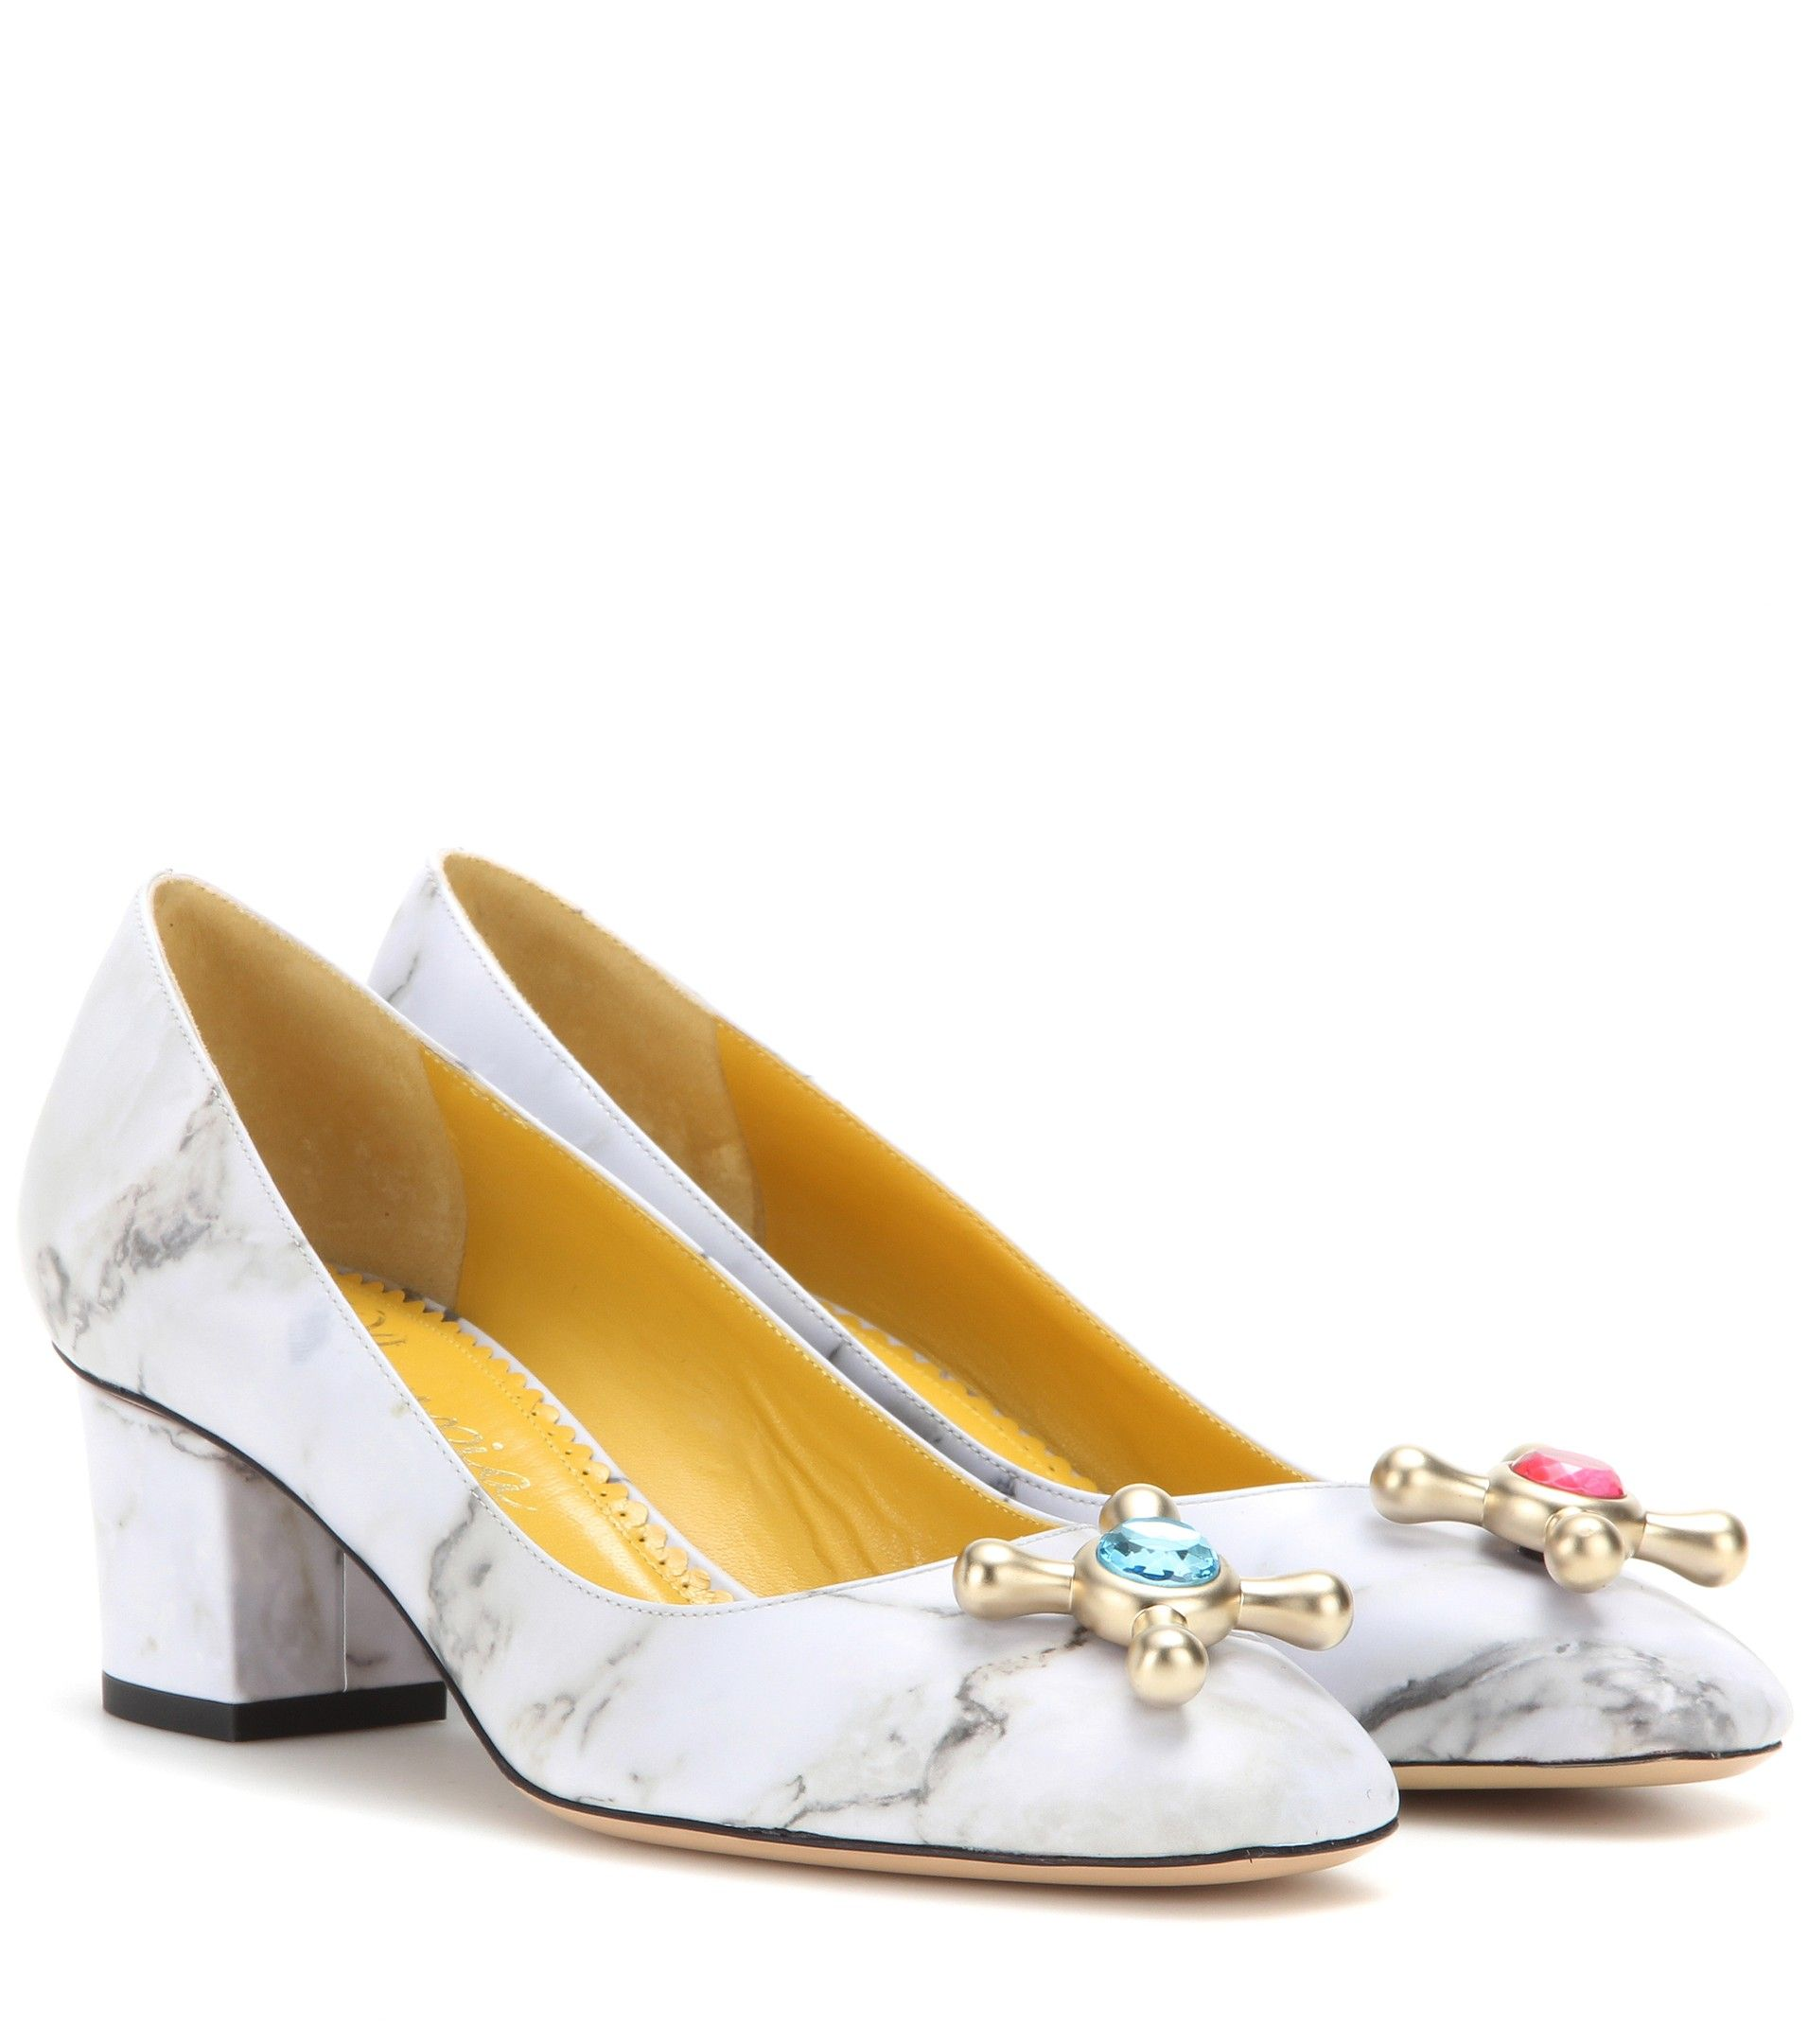 b31d2e19a mytheresa.com - Oprah Embellished Leather Pumps ¦ Charlotte Olympia ∇  mytheresa - Luxury Fashion